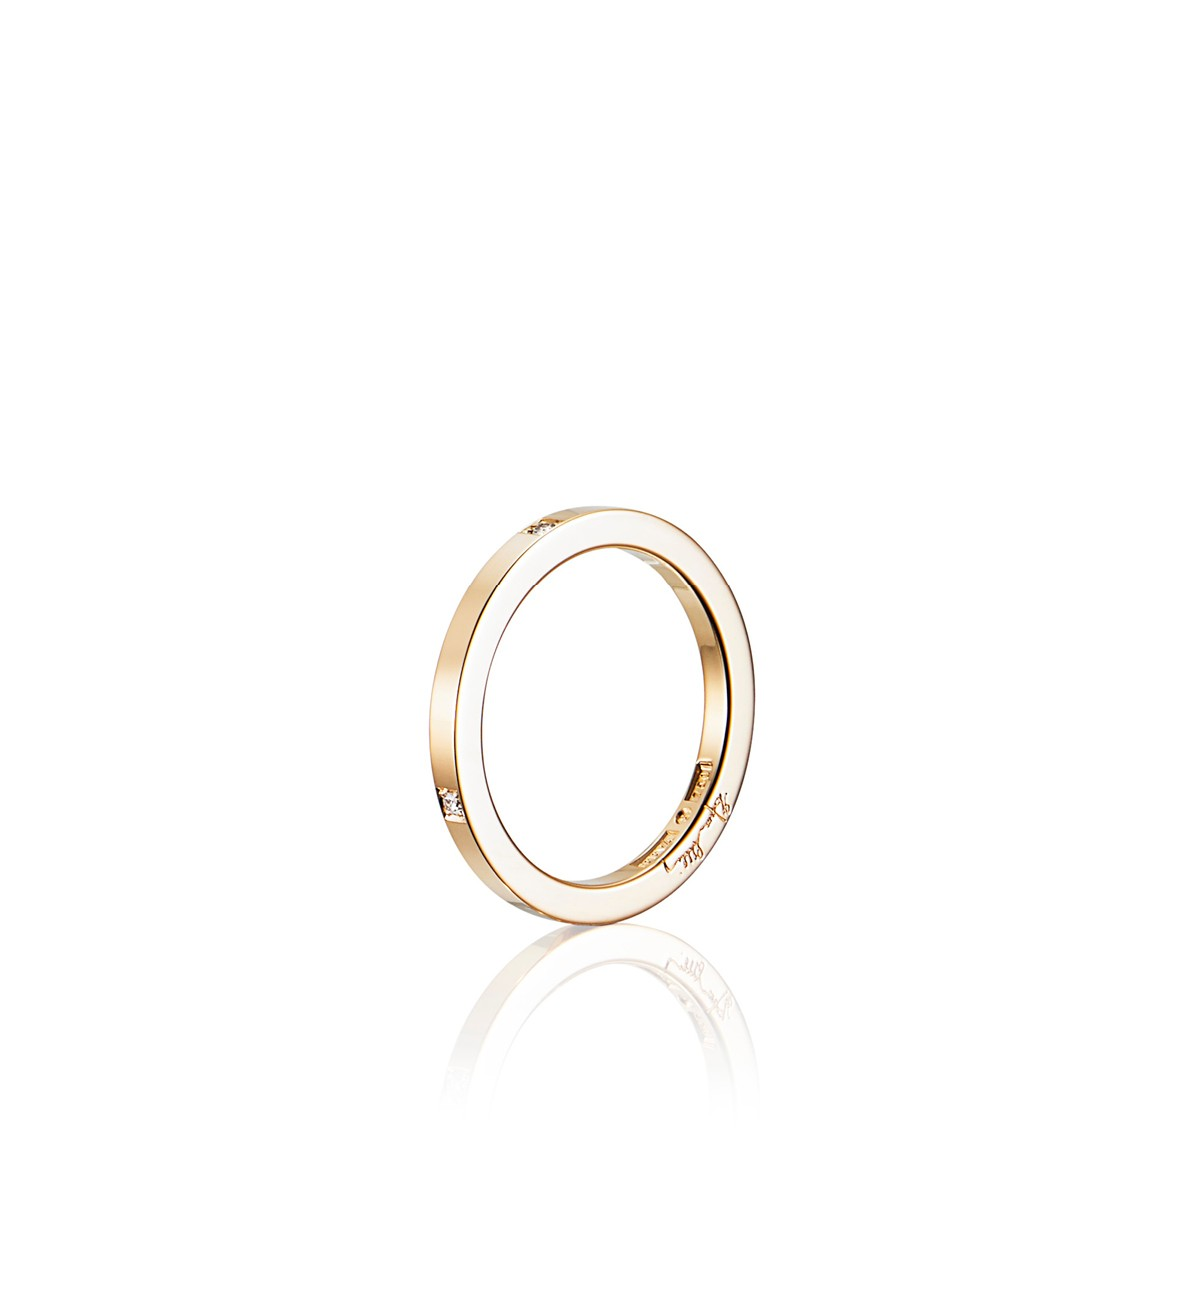 Efva Attling High & 4 Stars Thin Ring timanttisormus